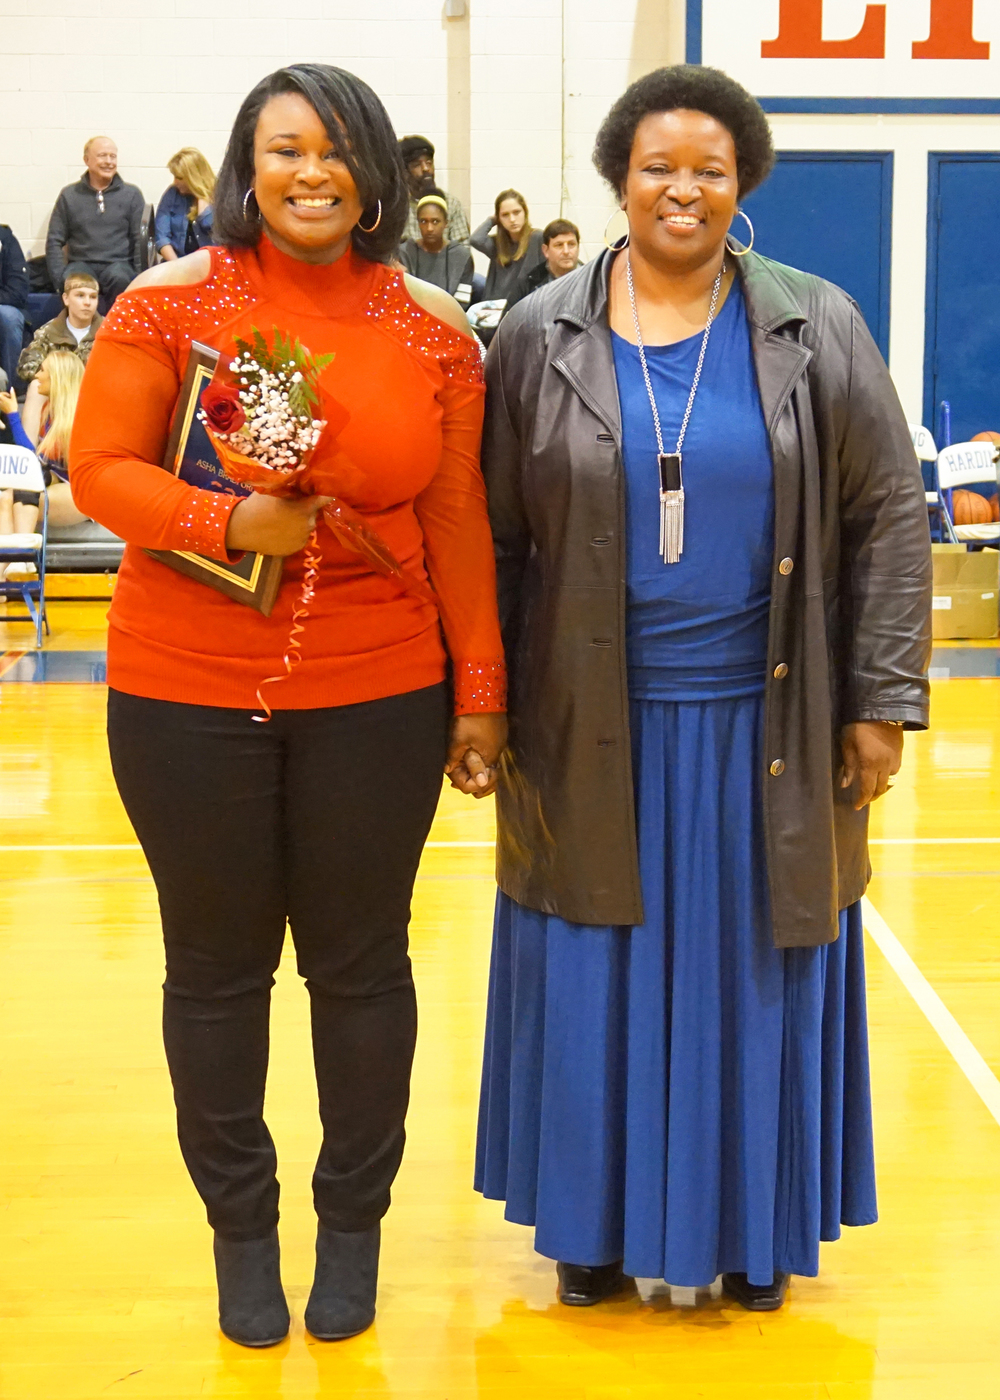 Feb12 SeniorNightBasketball06.jpg